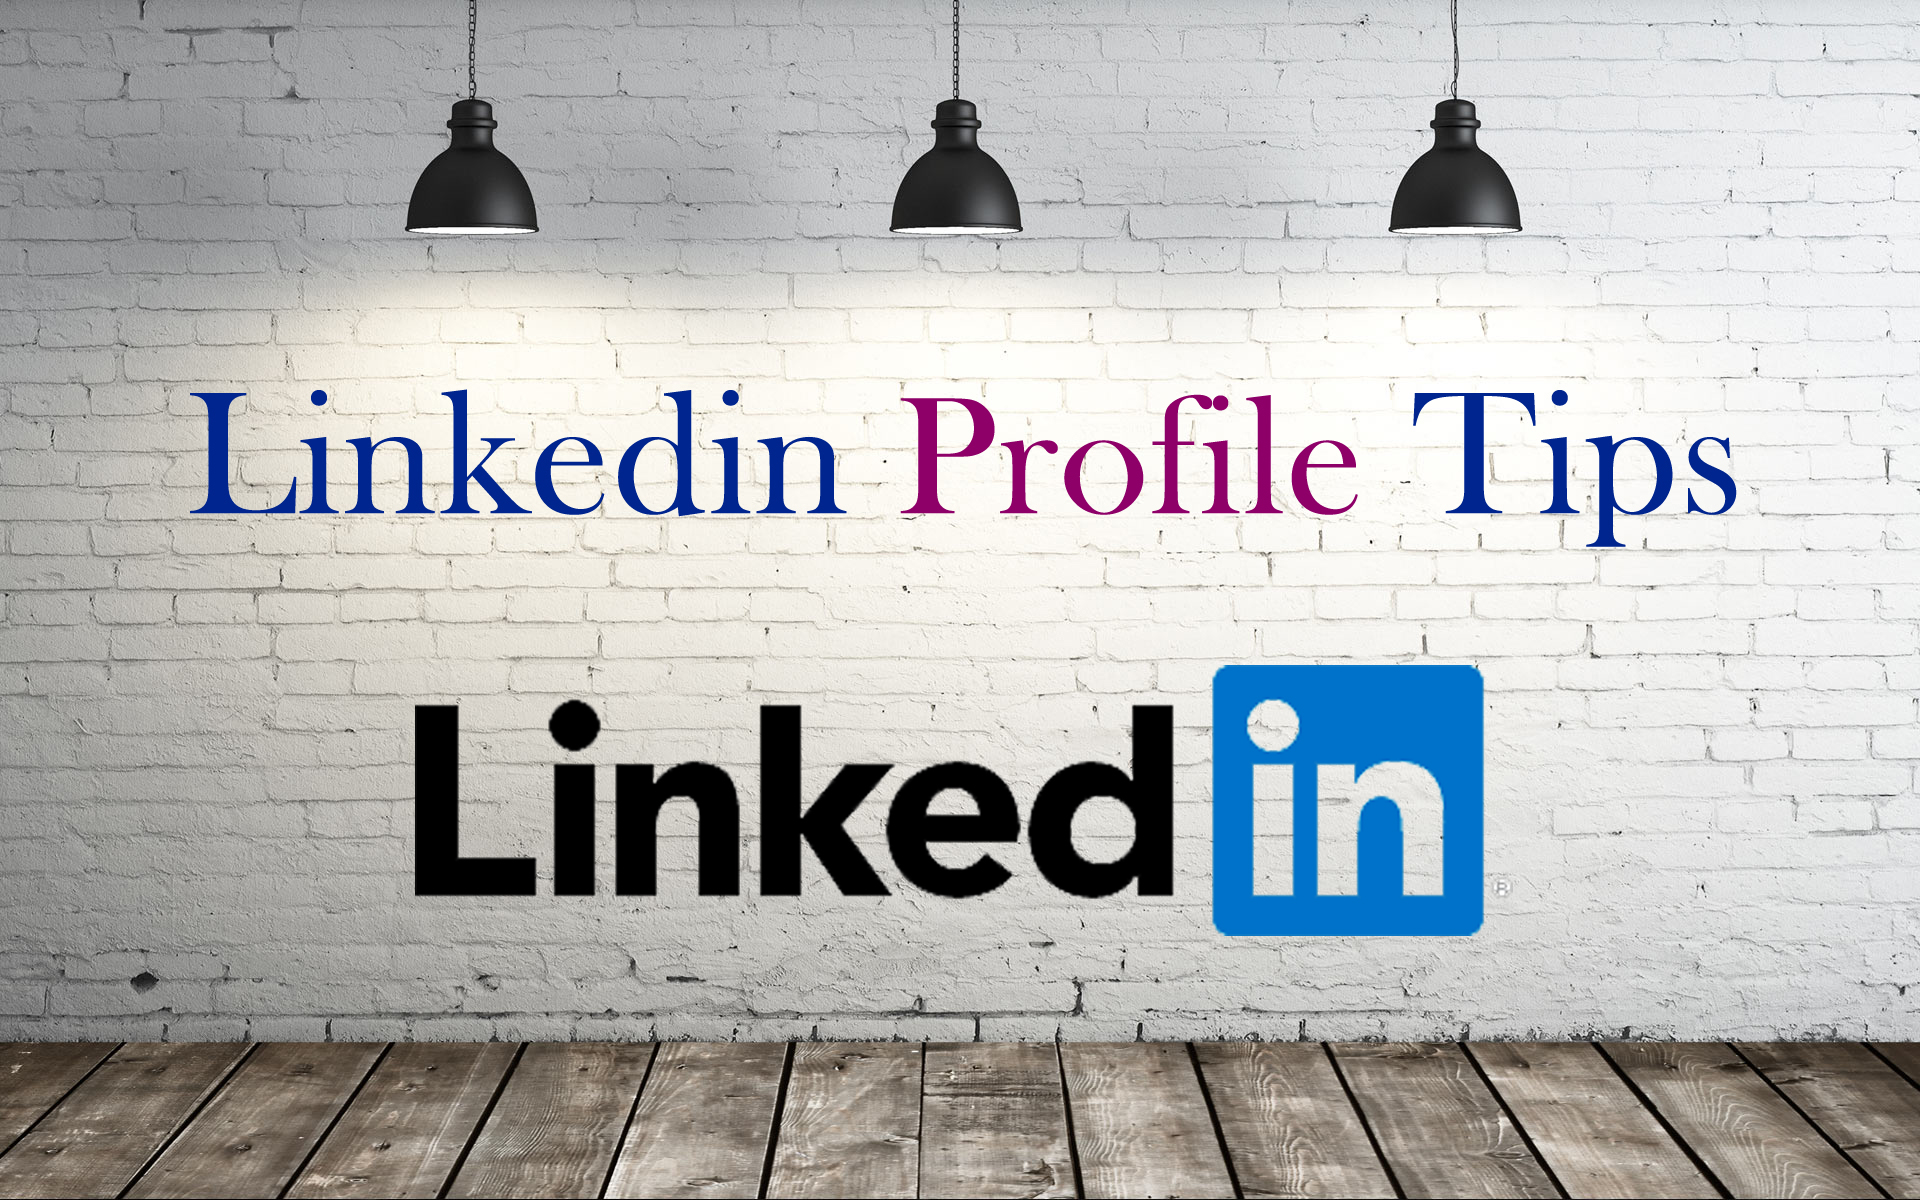 Linkedin-Profile-Tips